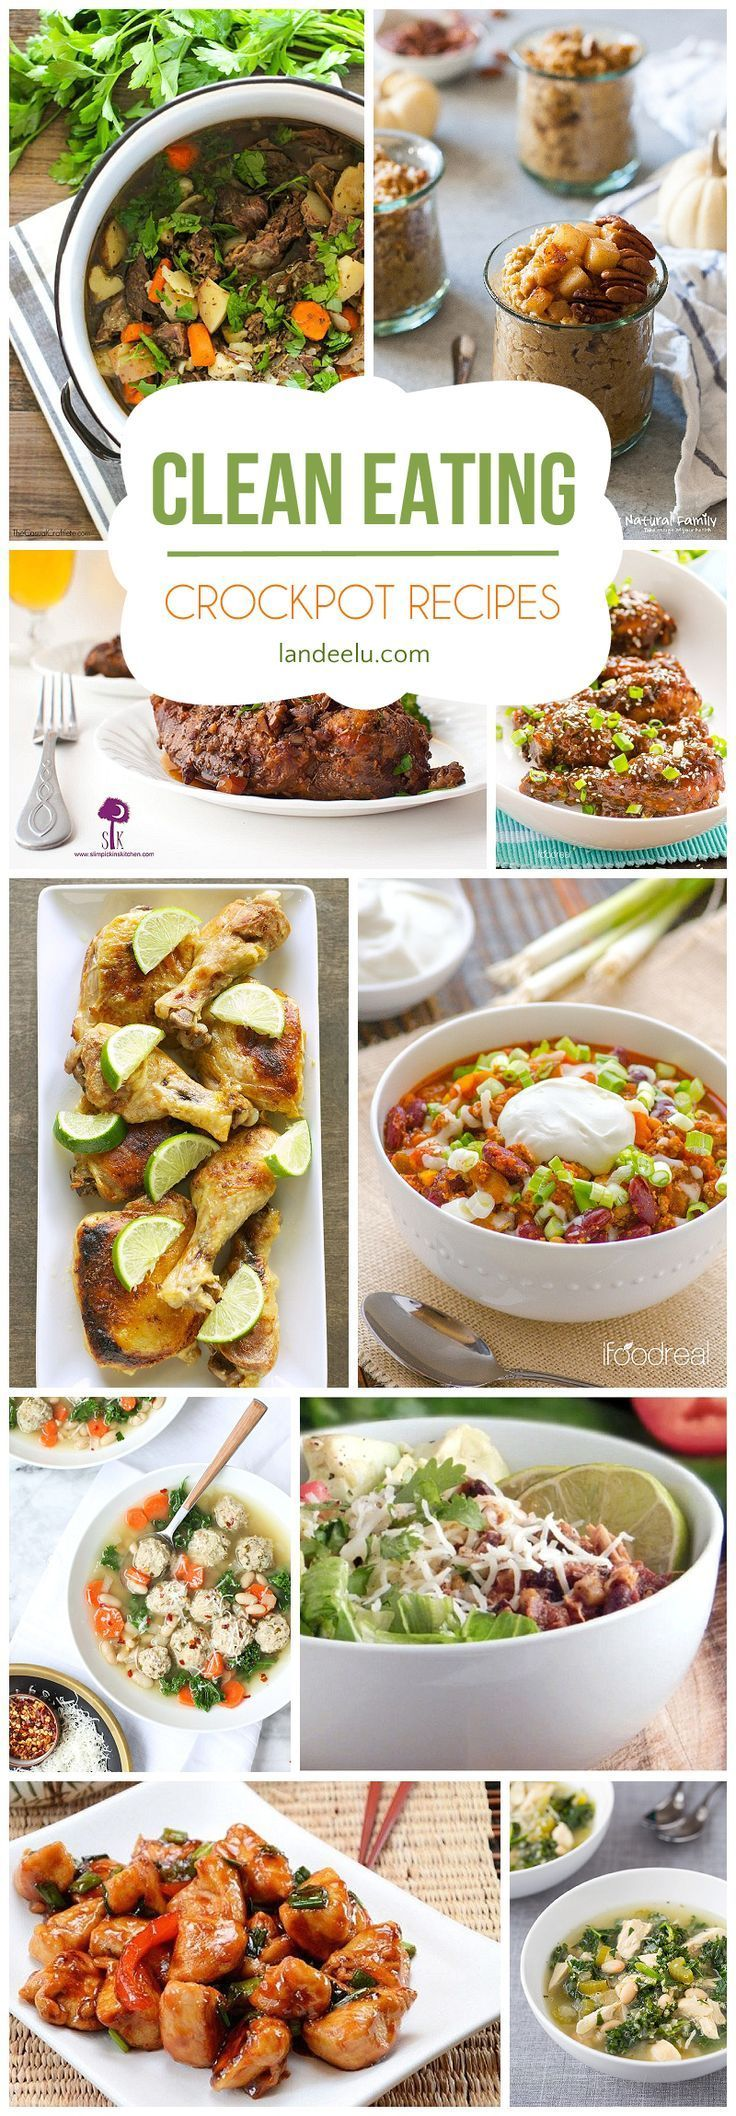 CleanClean Eating Recipes for Your Crockpot! | http://landeelu.com An easy way to get a clean healthy dinner on the table at night! Use your trusty crockpot! Lots of recipes! Eating Recipes for Your Crockpot! | http://landeelu.com An easy way to get a cle